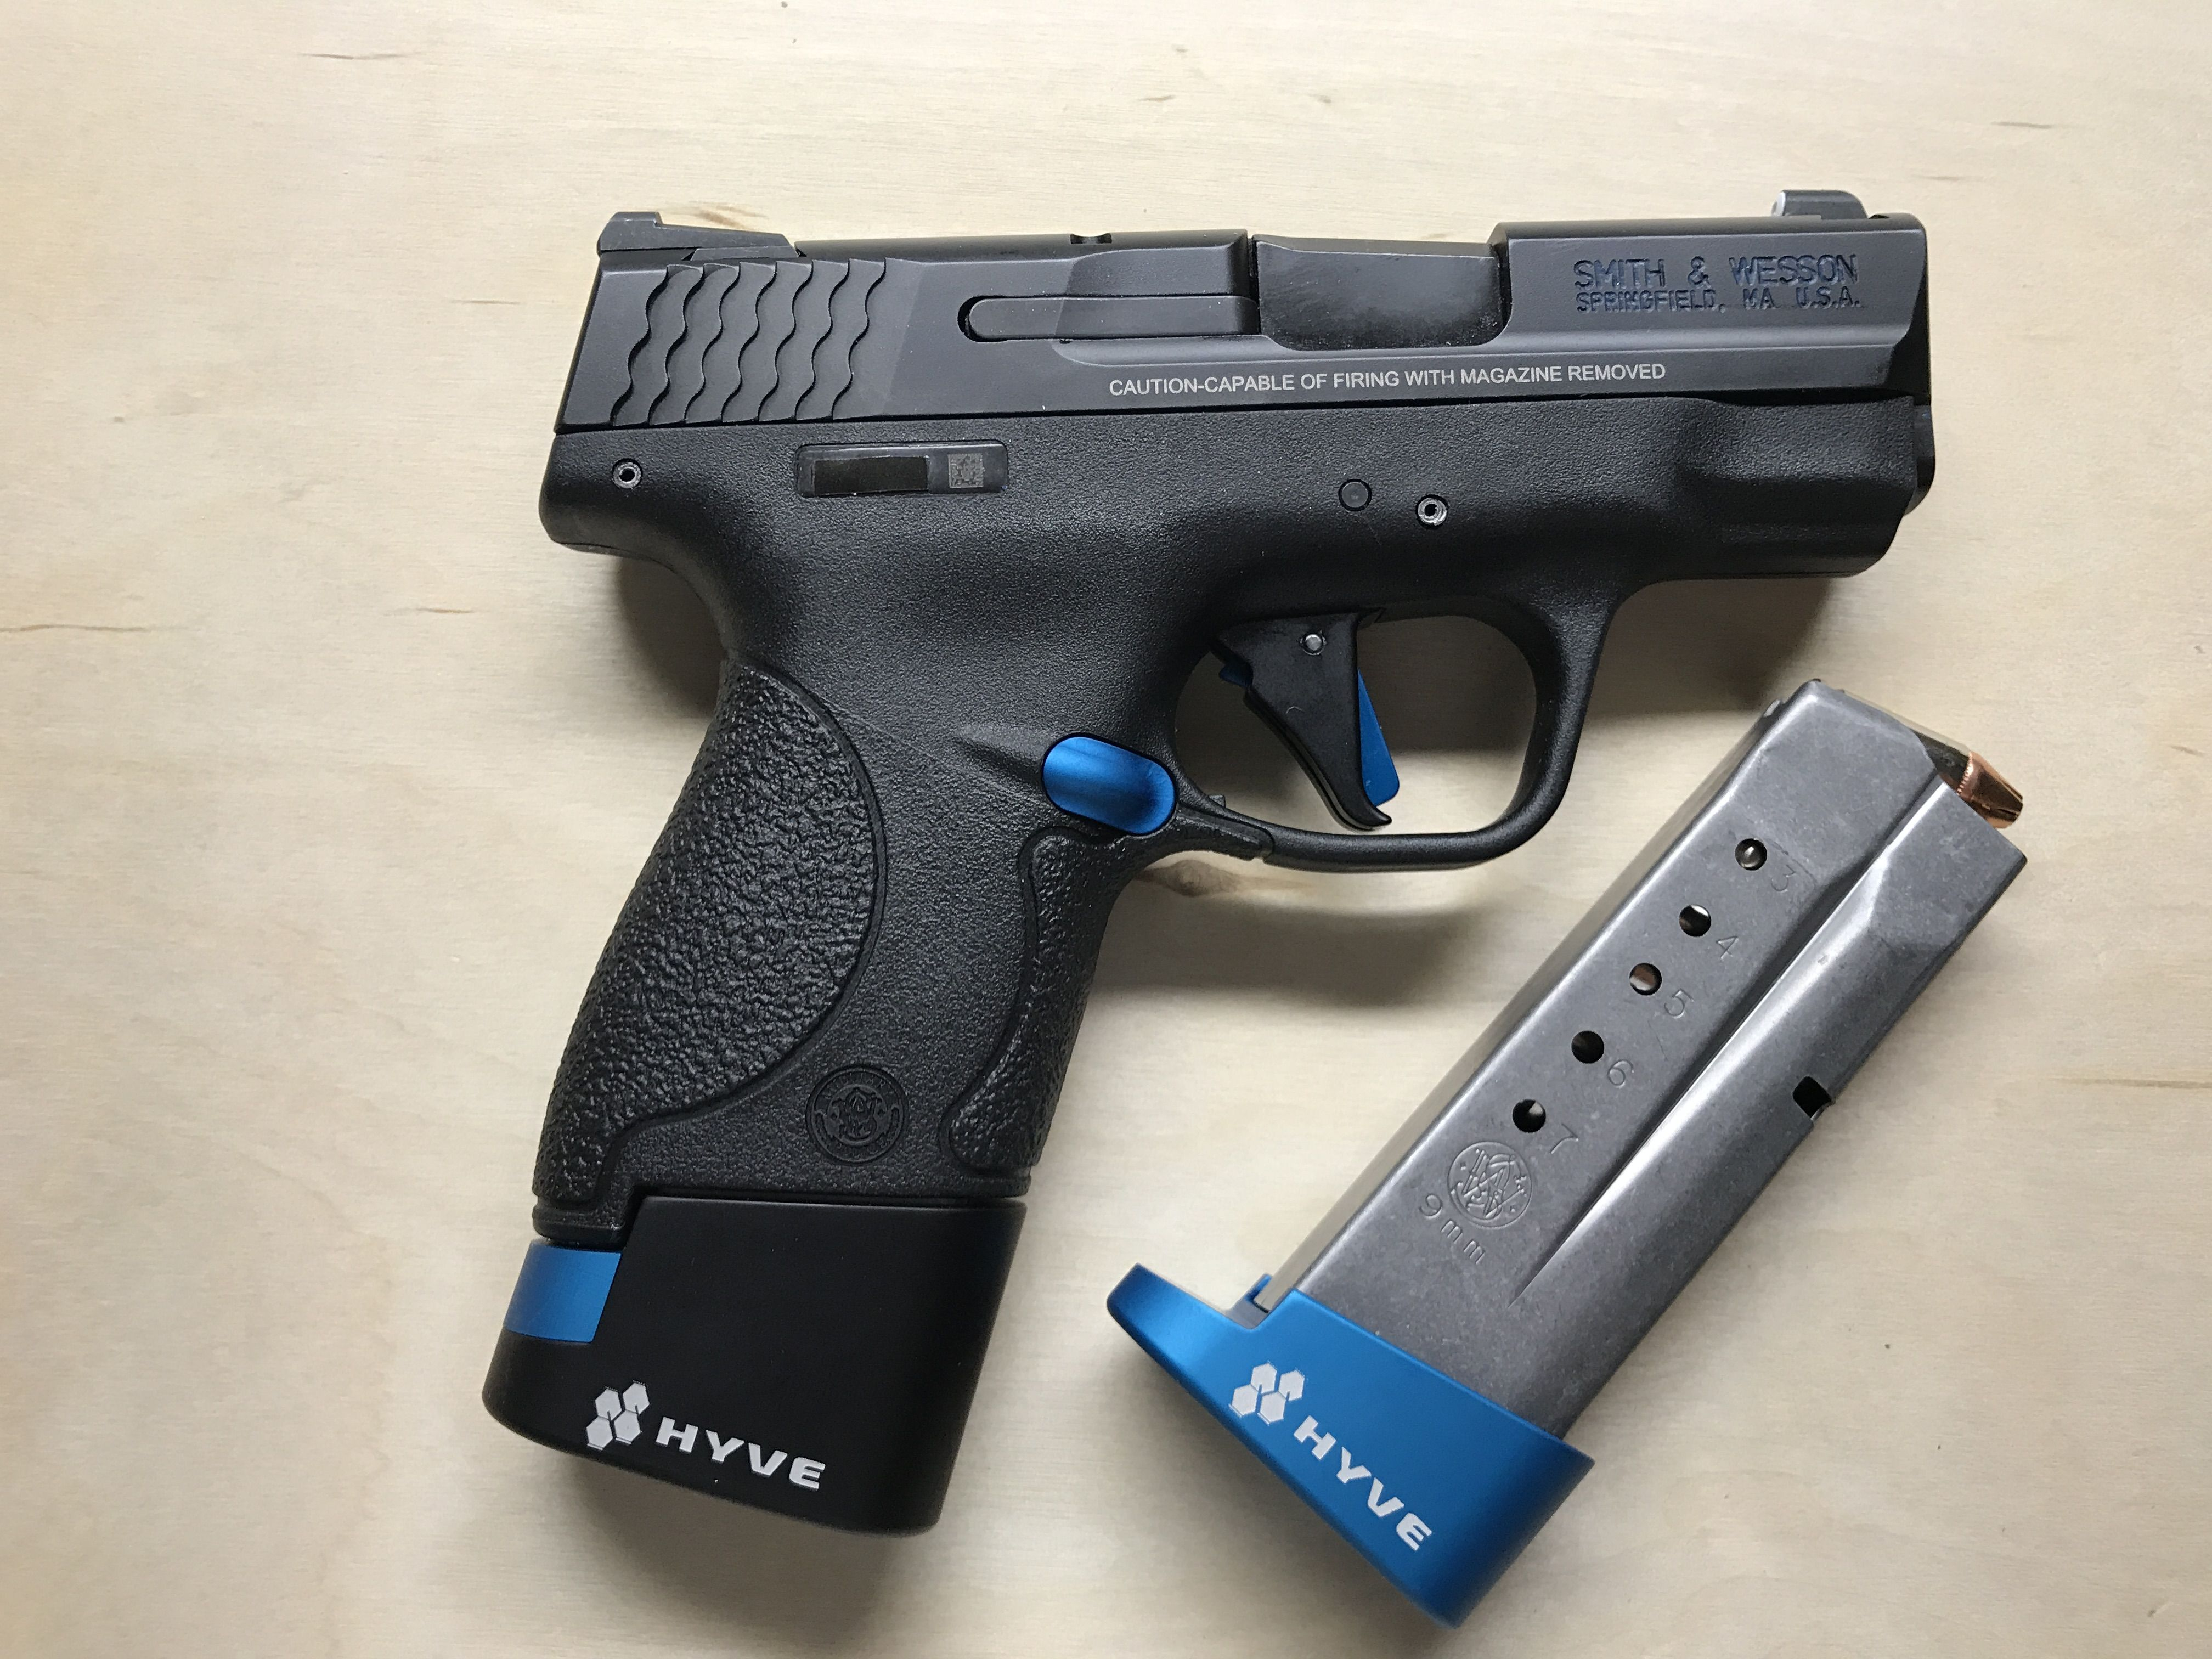 Smith and Wesson Shield 9mm with +1 and +2 Hyve magazine Base plates